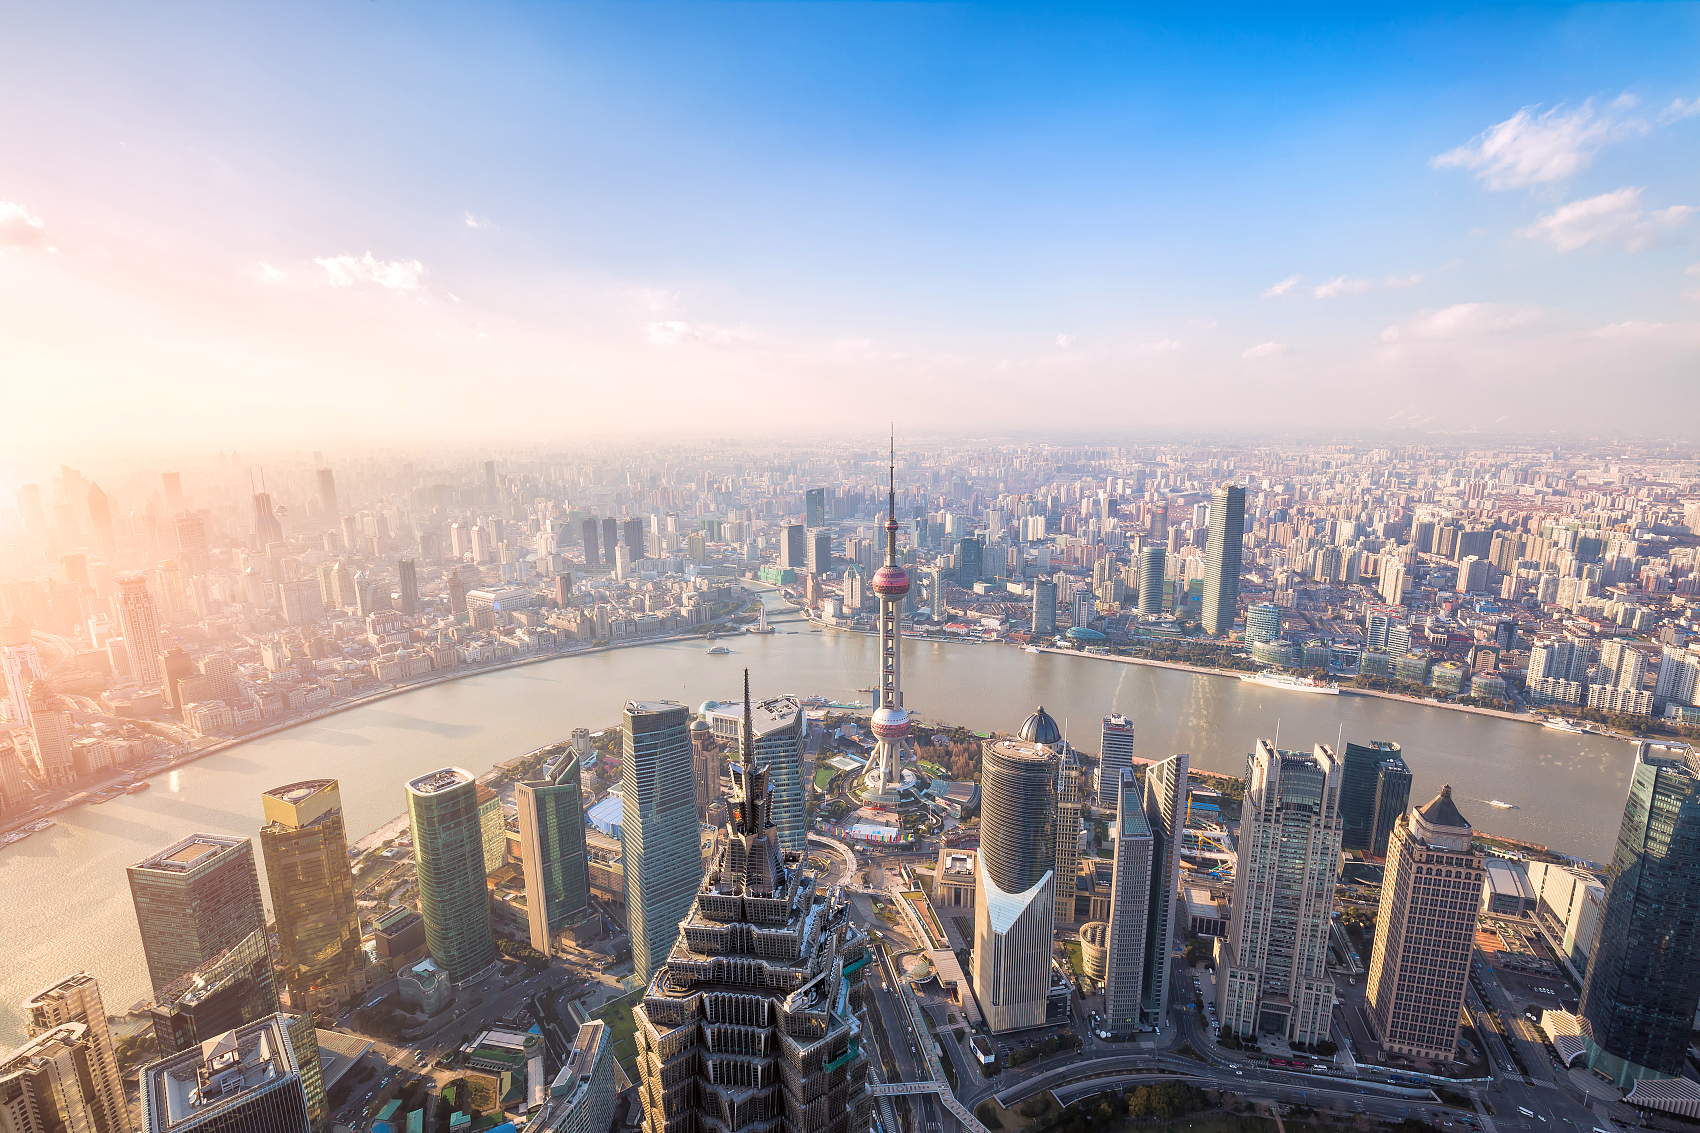 China's economic and social progress in 2019